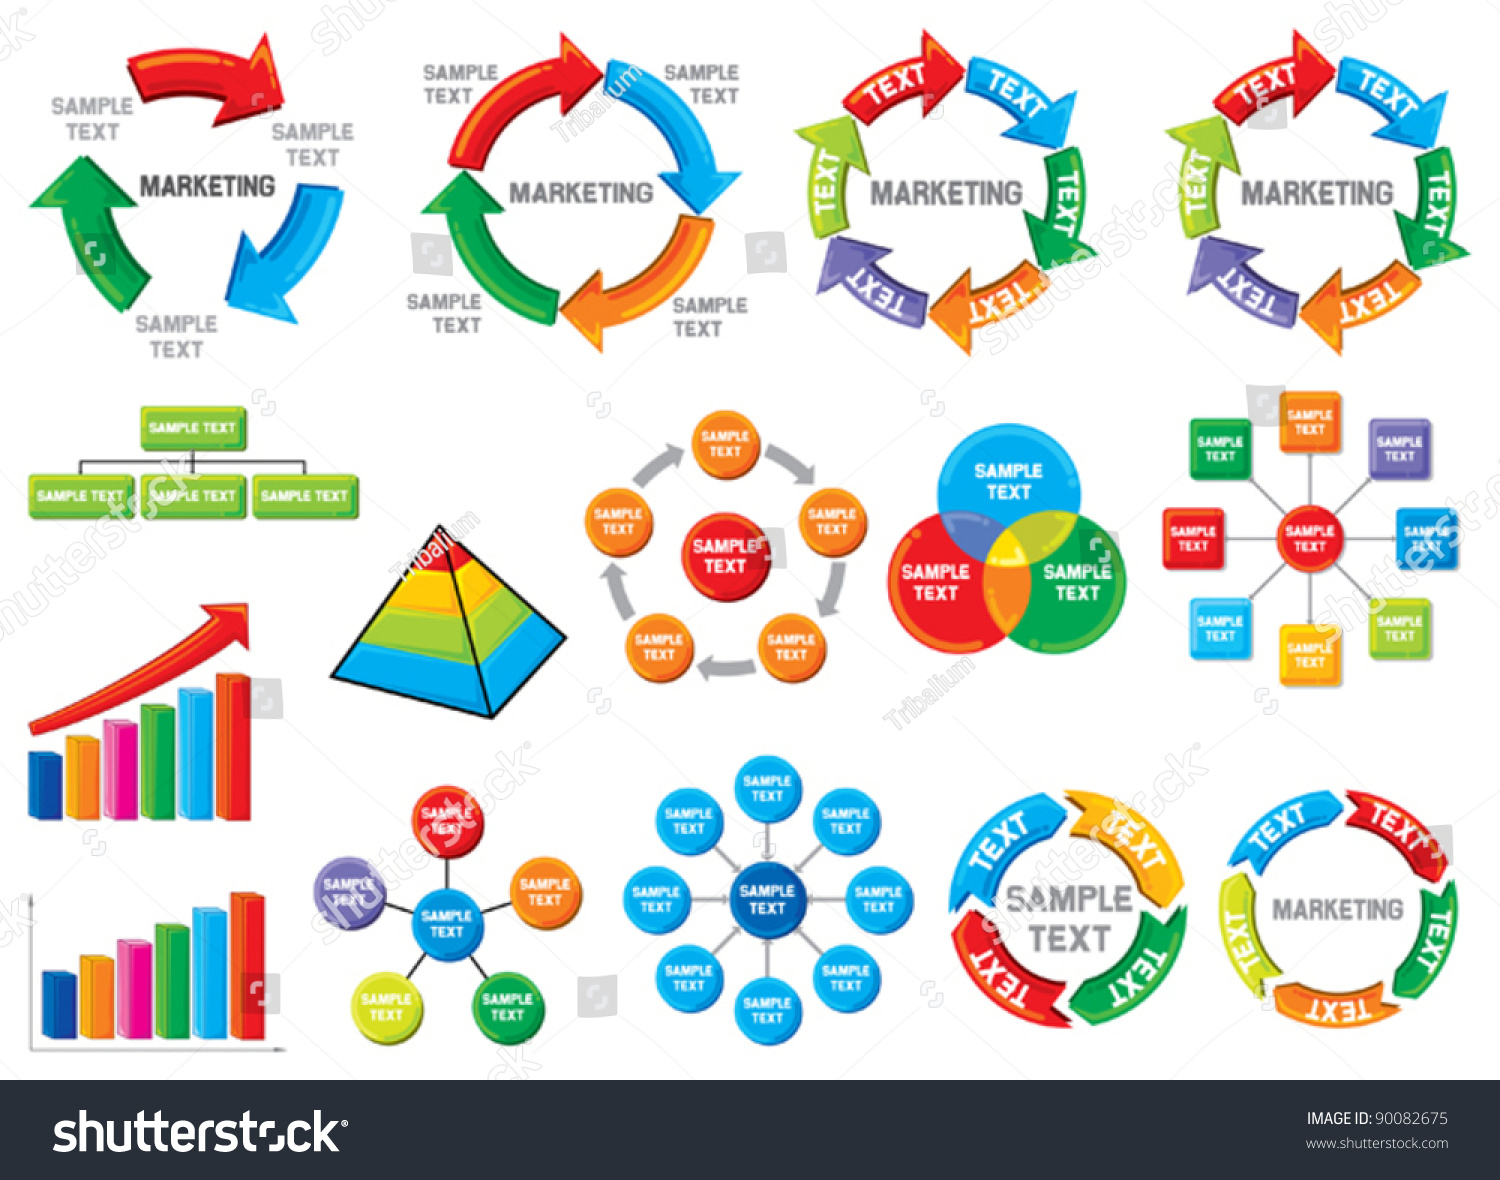 Graphic Business Process Diagram Collection (Bar Graph, Circle Chart) Stock Vector Illustration